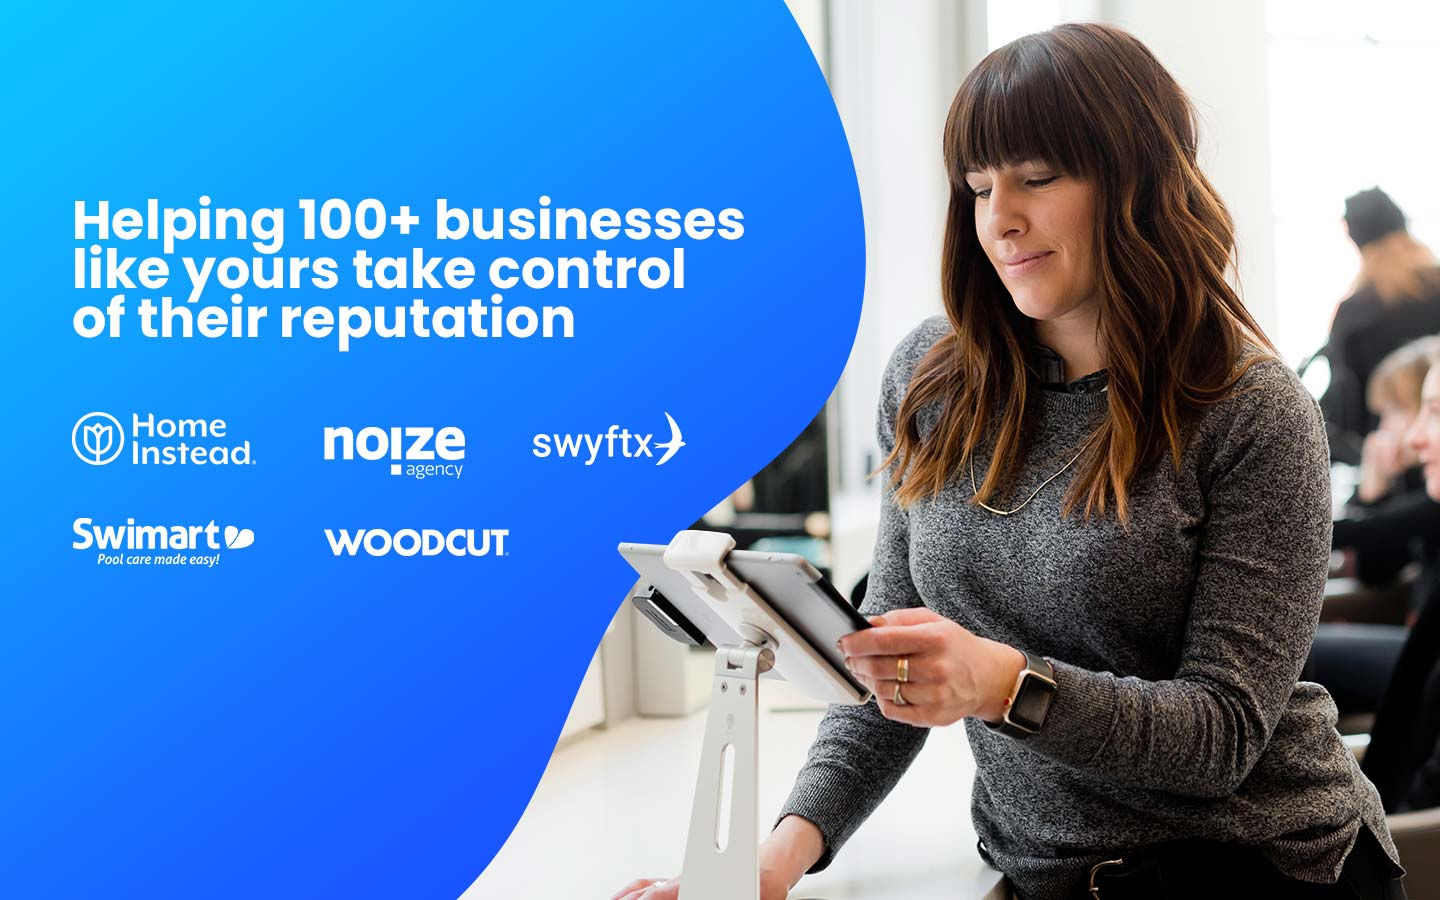 Helping 100+ businesses like yours take control of their reputation